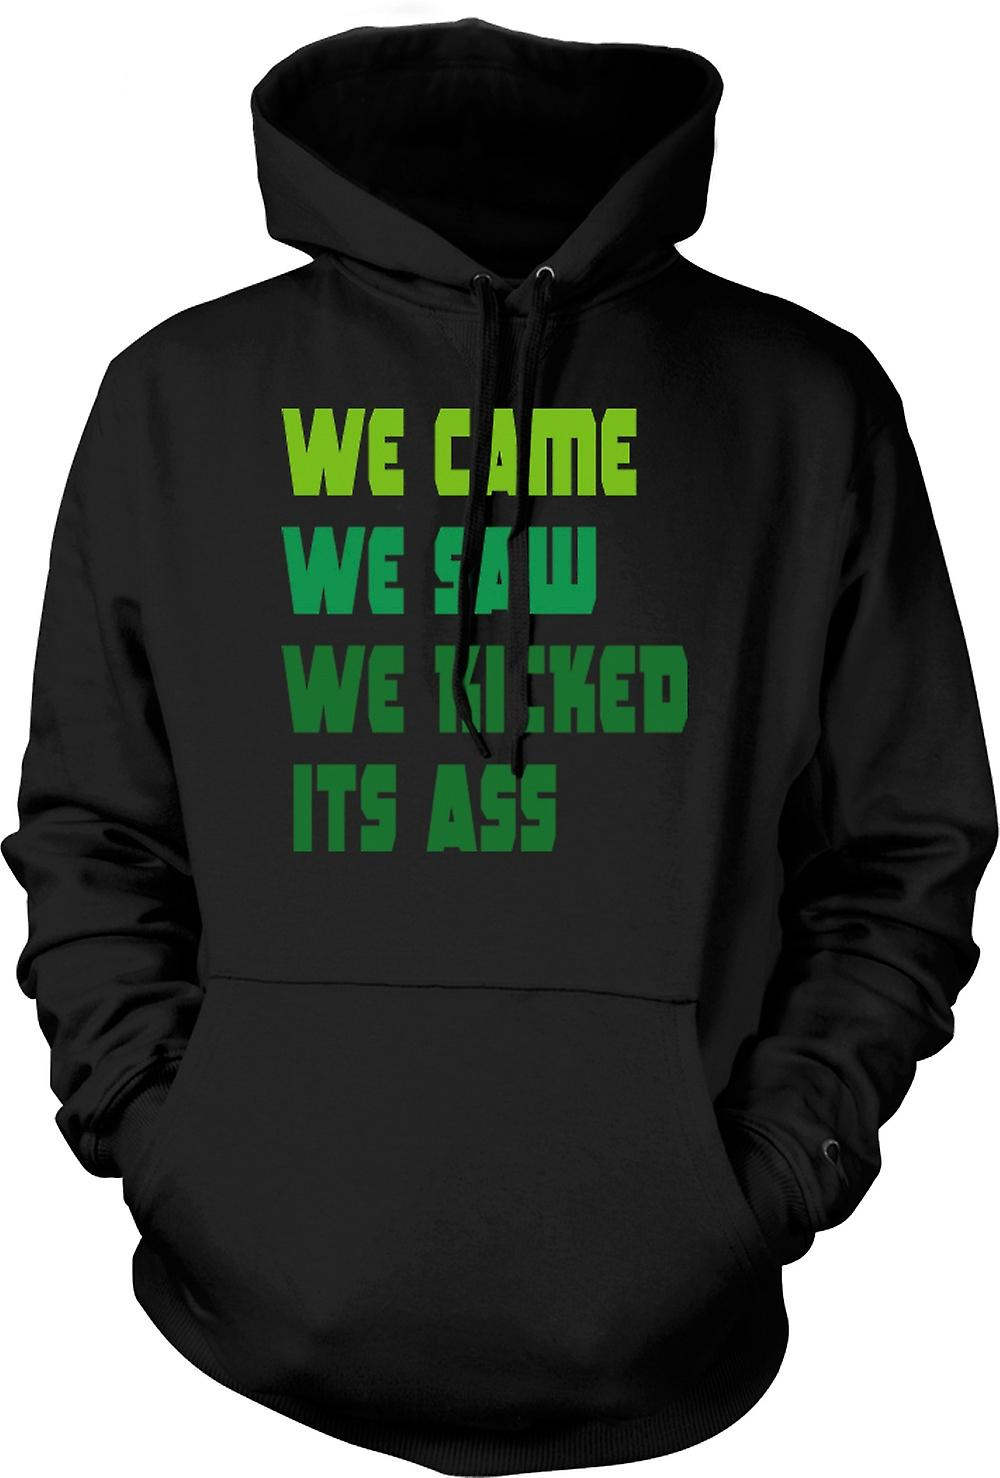 Mens Hoodie - We Came We Saw We Kicked Its Ass - Funny Quote